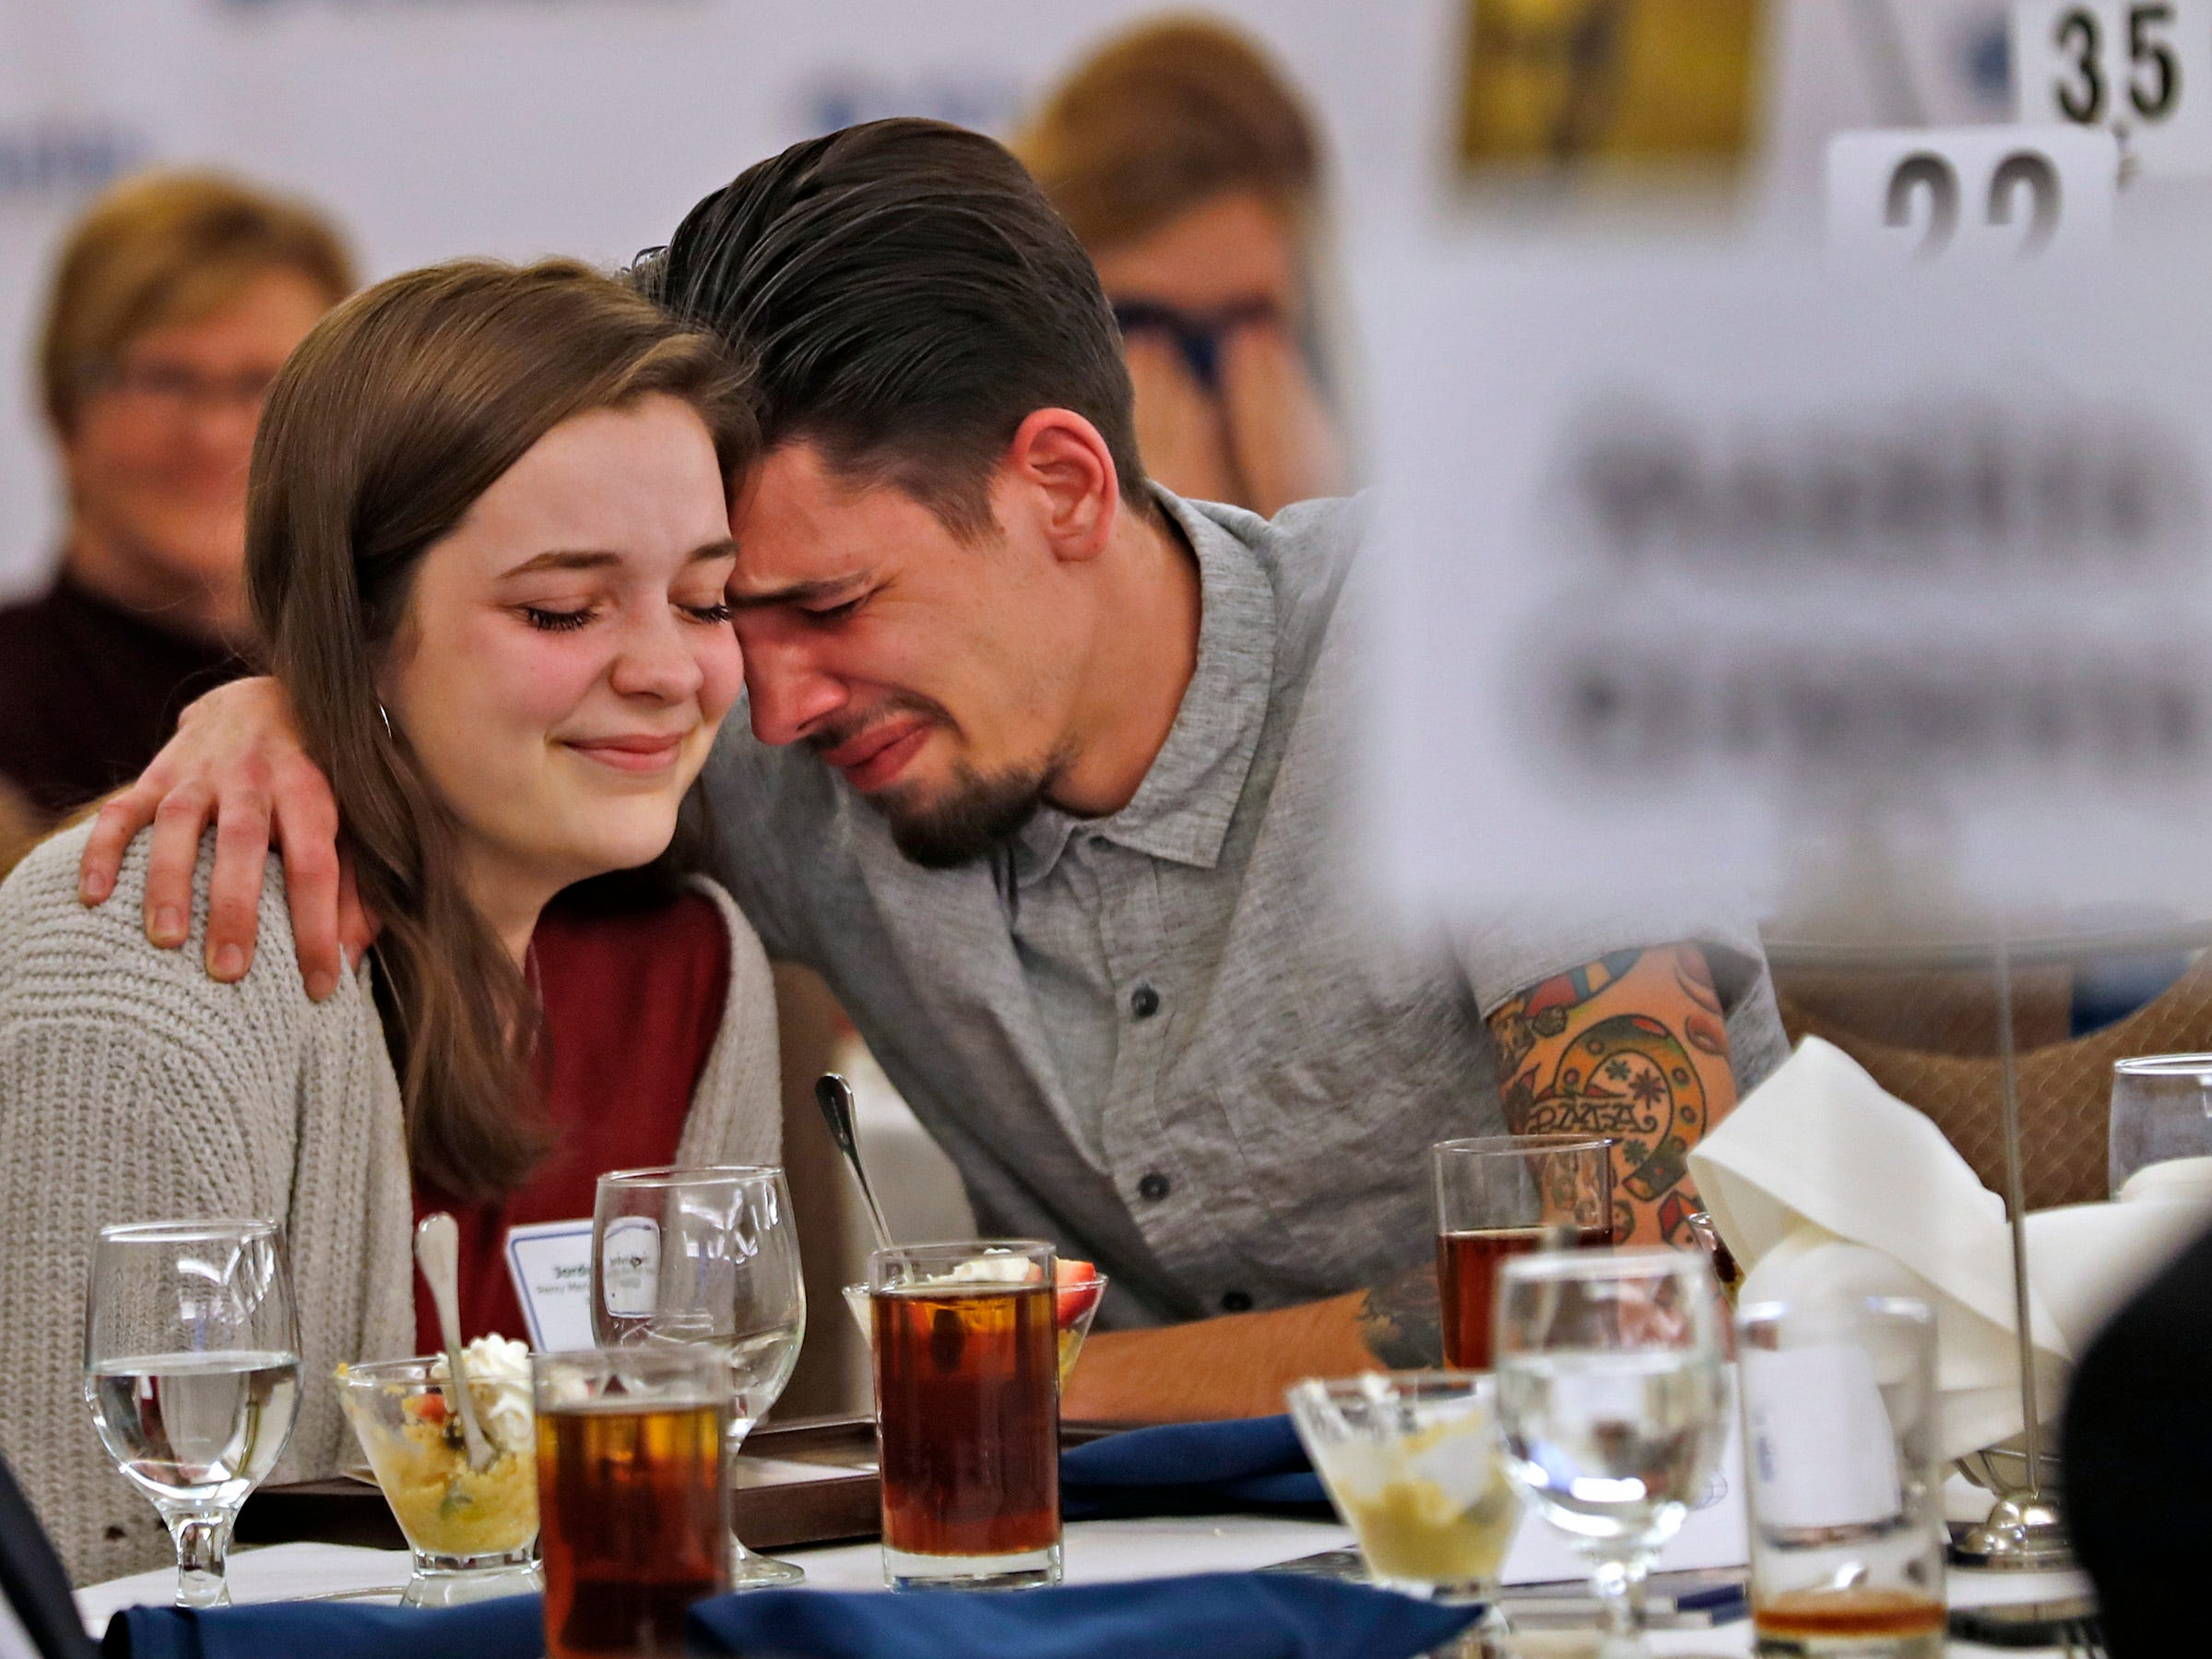 Her father died. Her mother left. She was homeless twice. But Jordyn Sloan persevered.